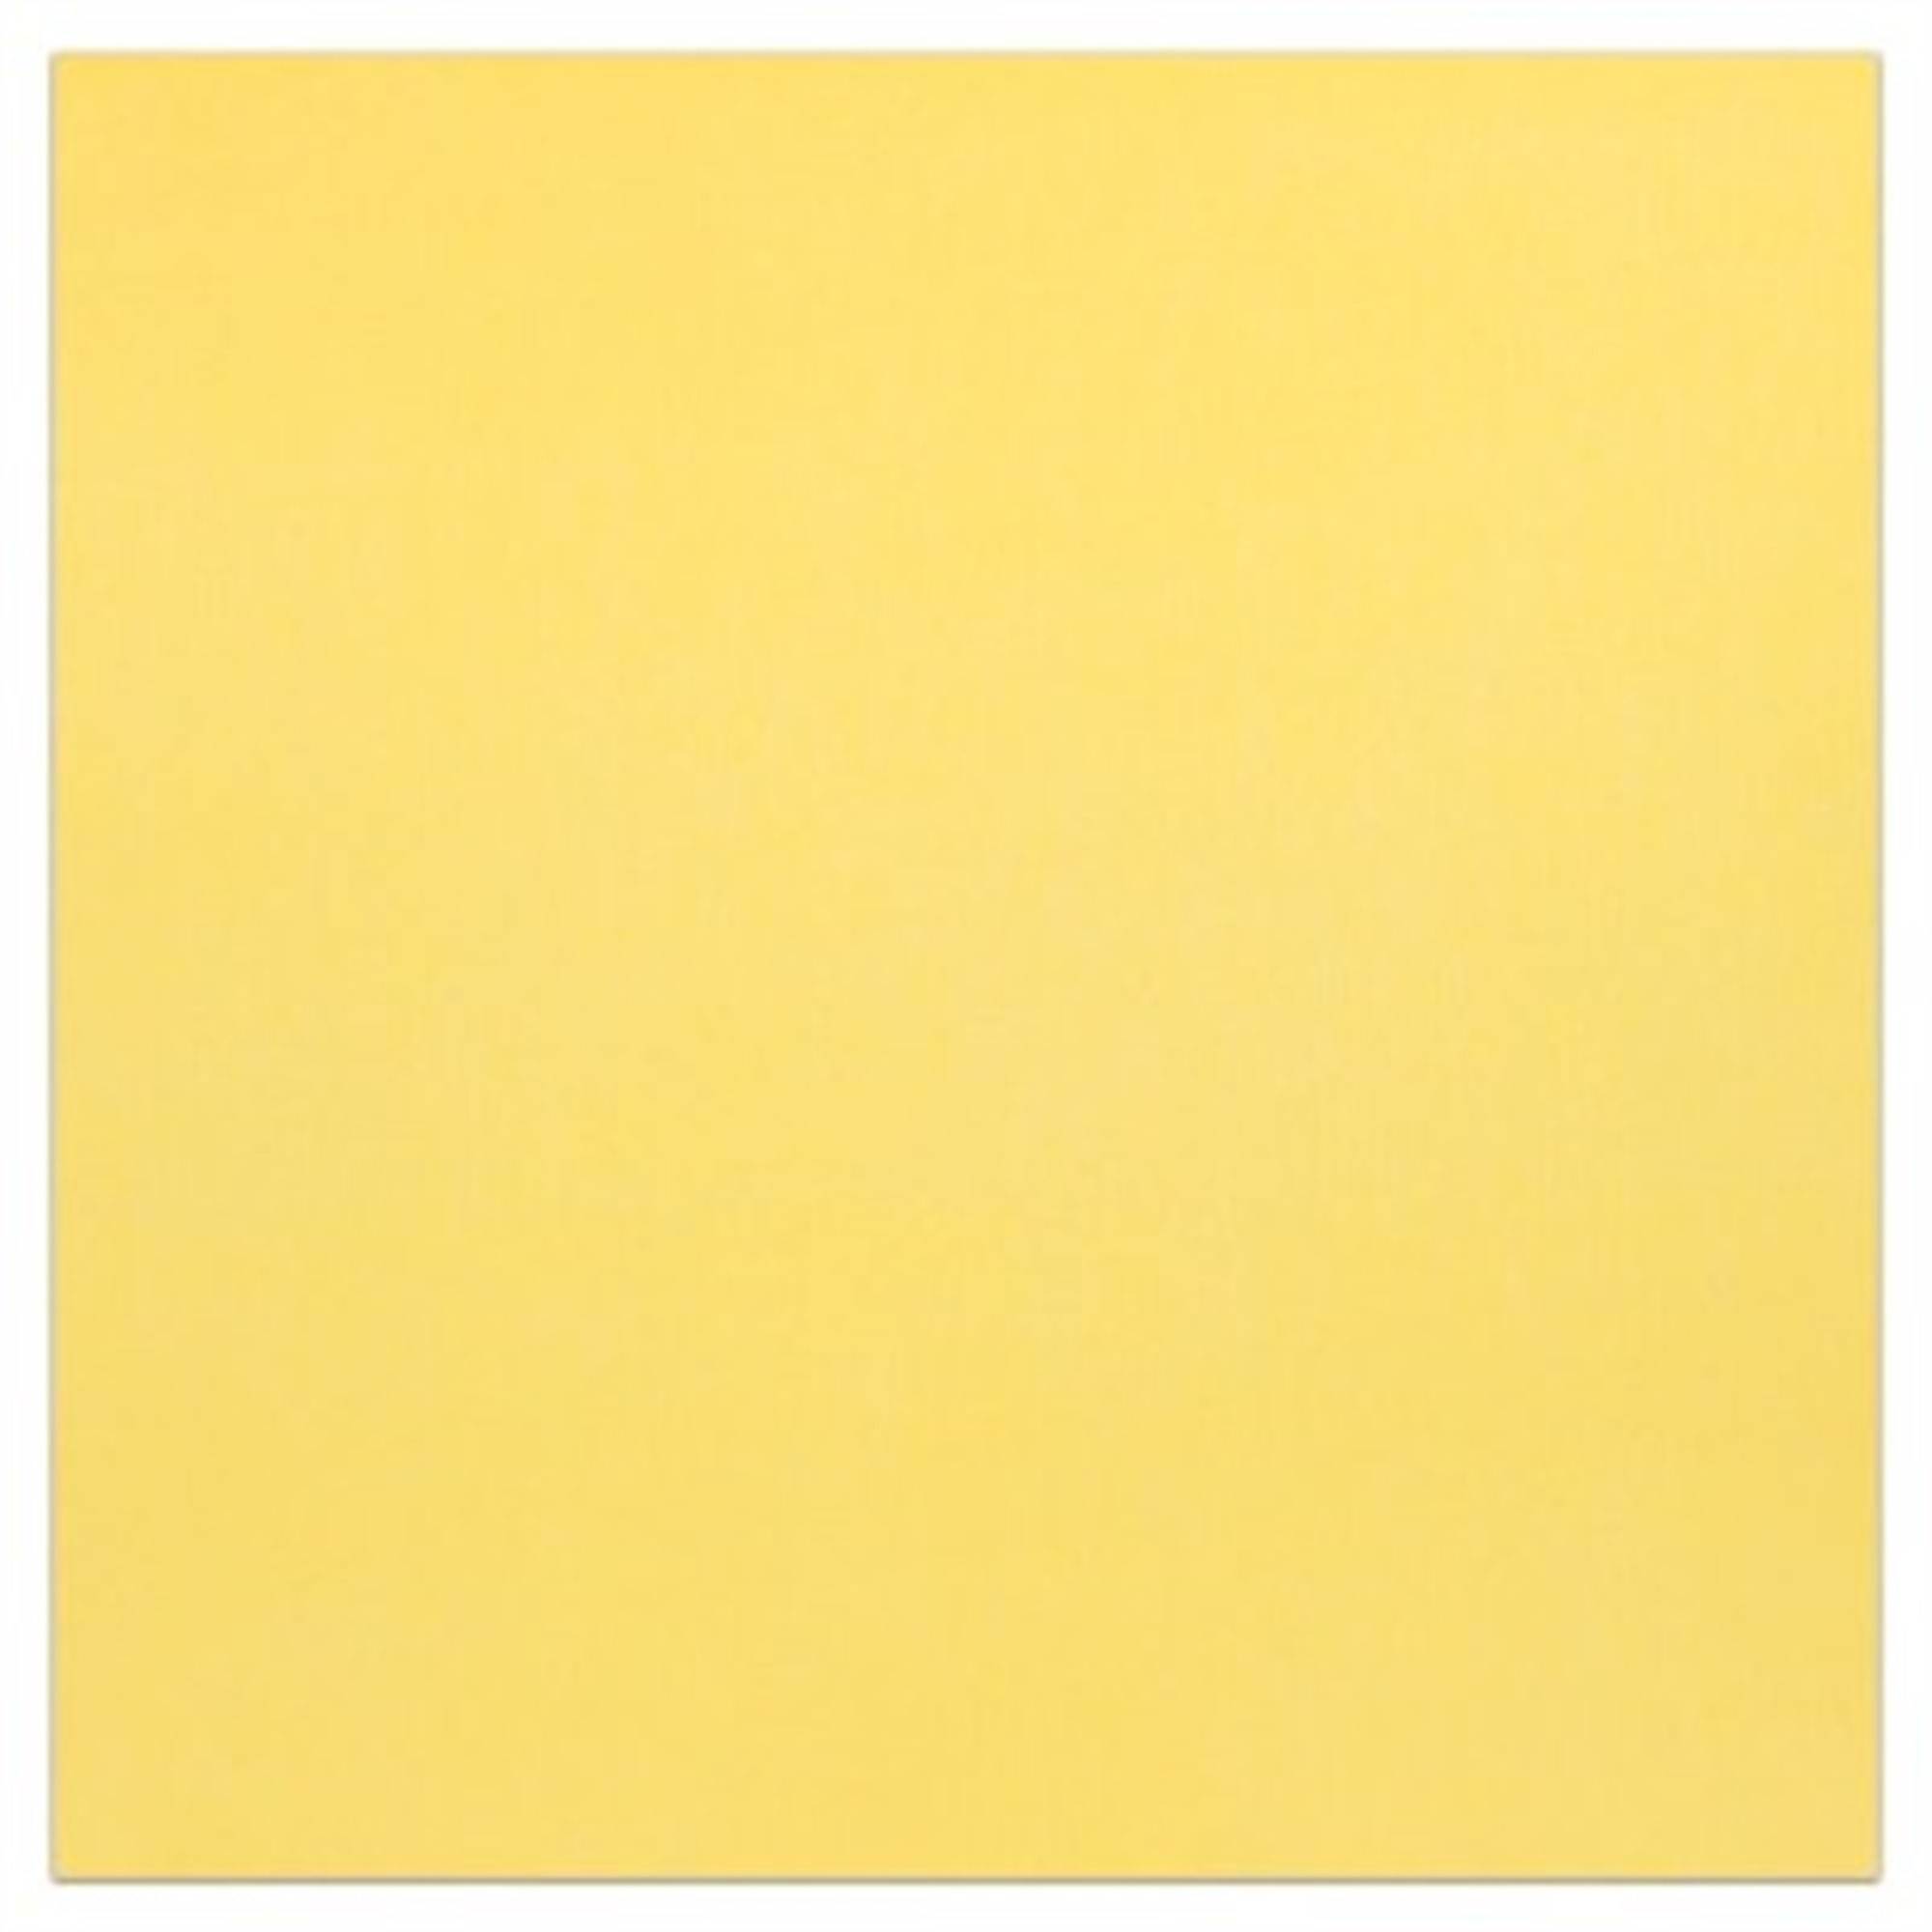 Yellow with White Lines, Vertical, Not Touching by Sol LeWitt